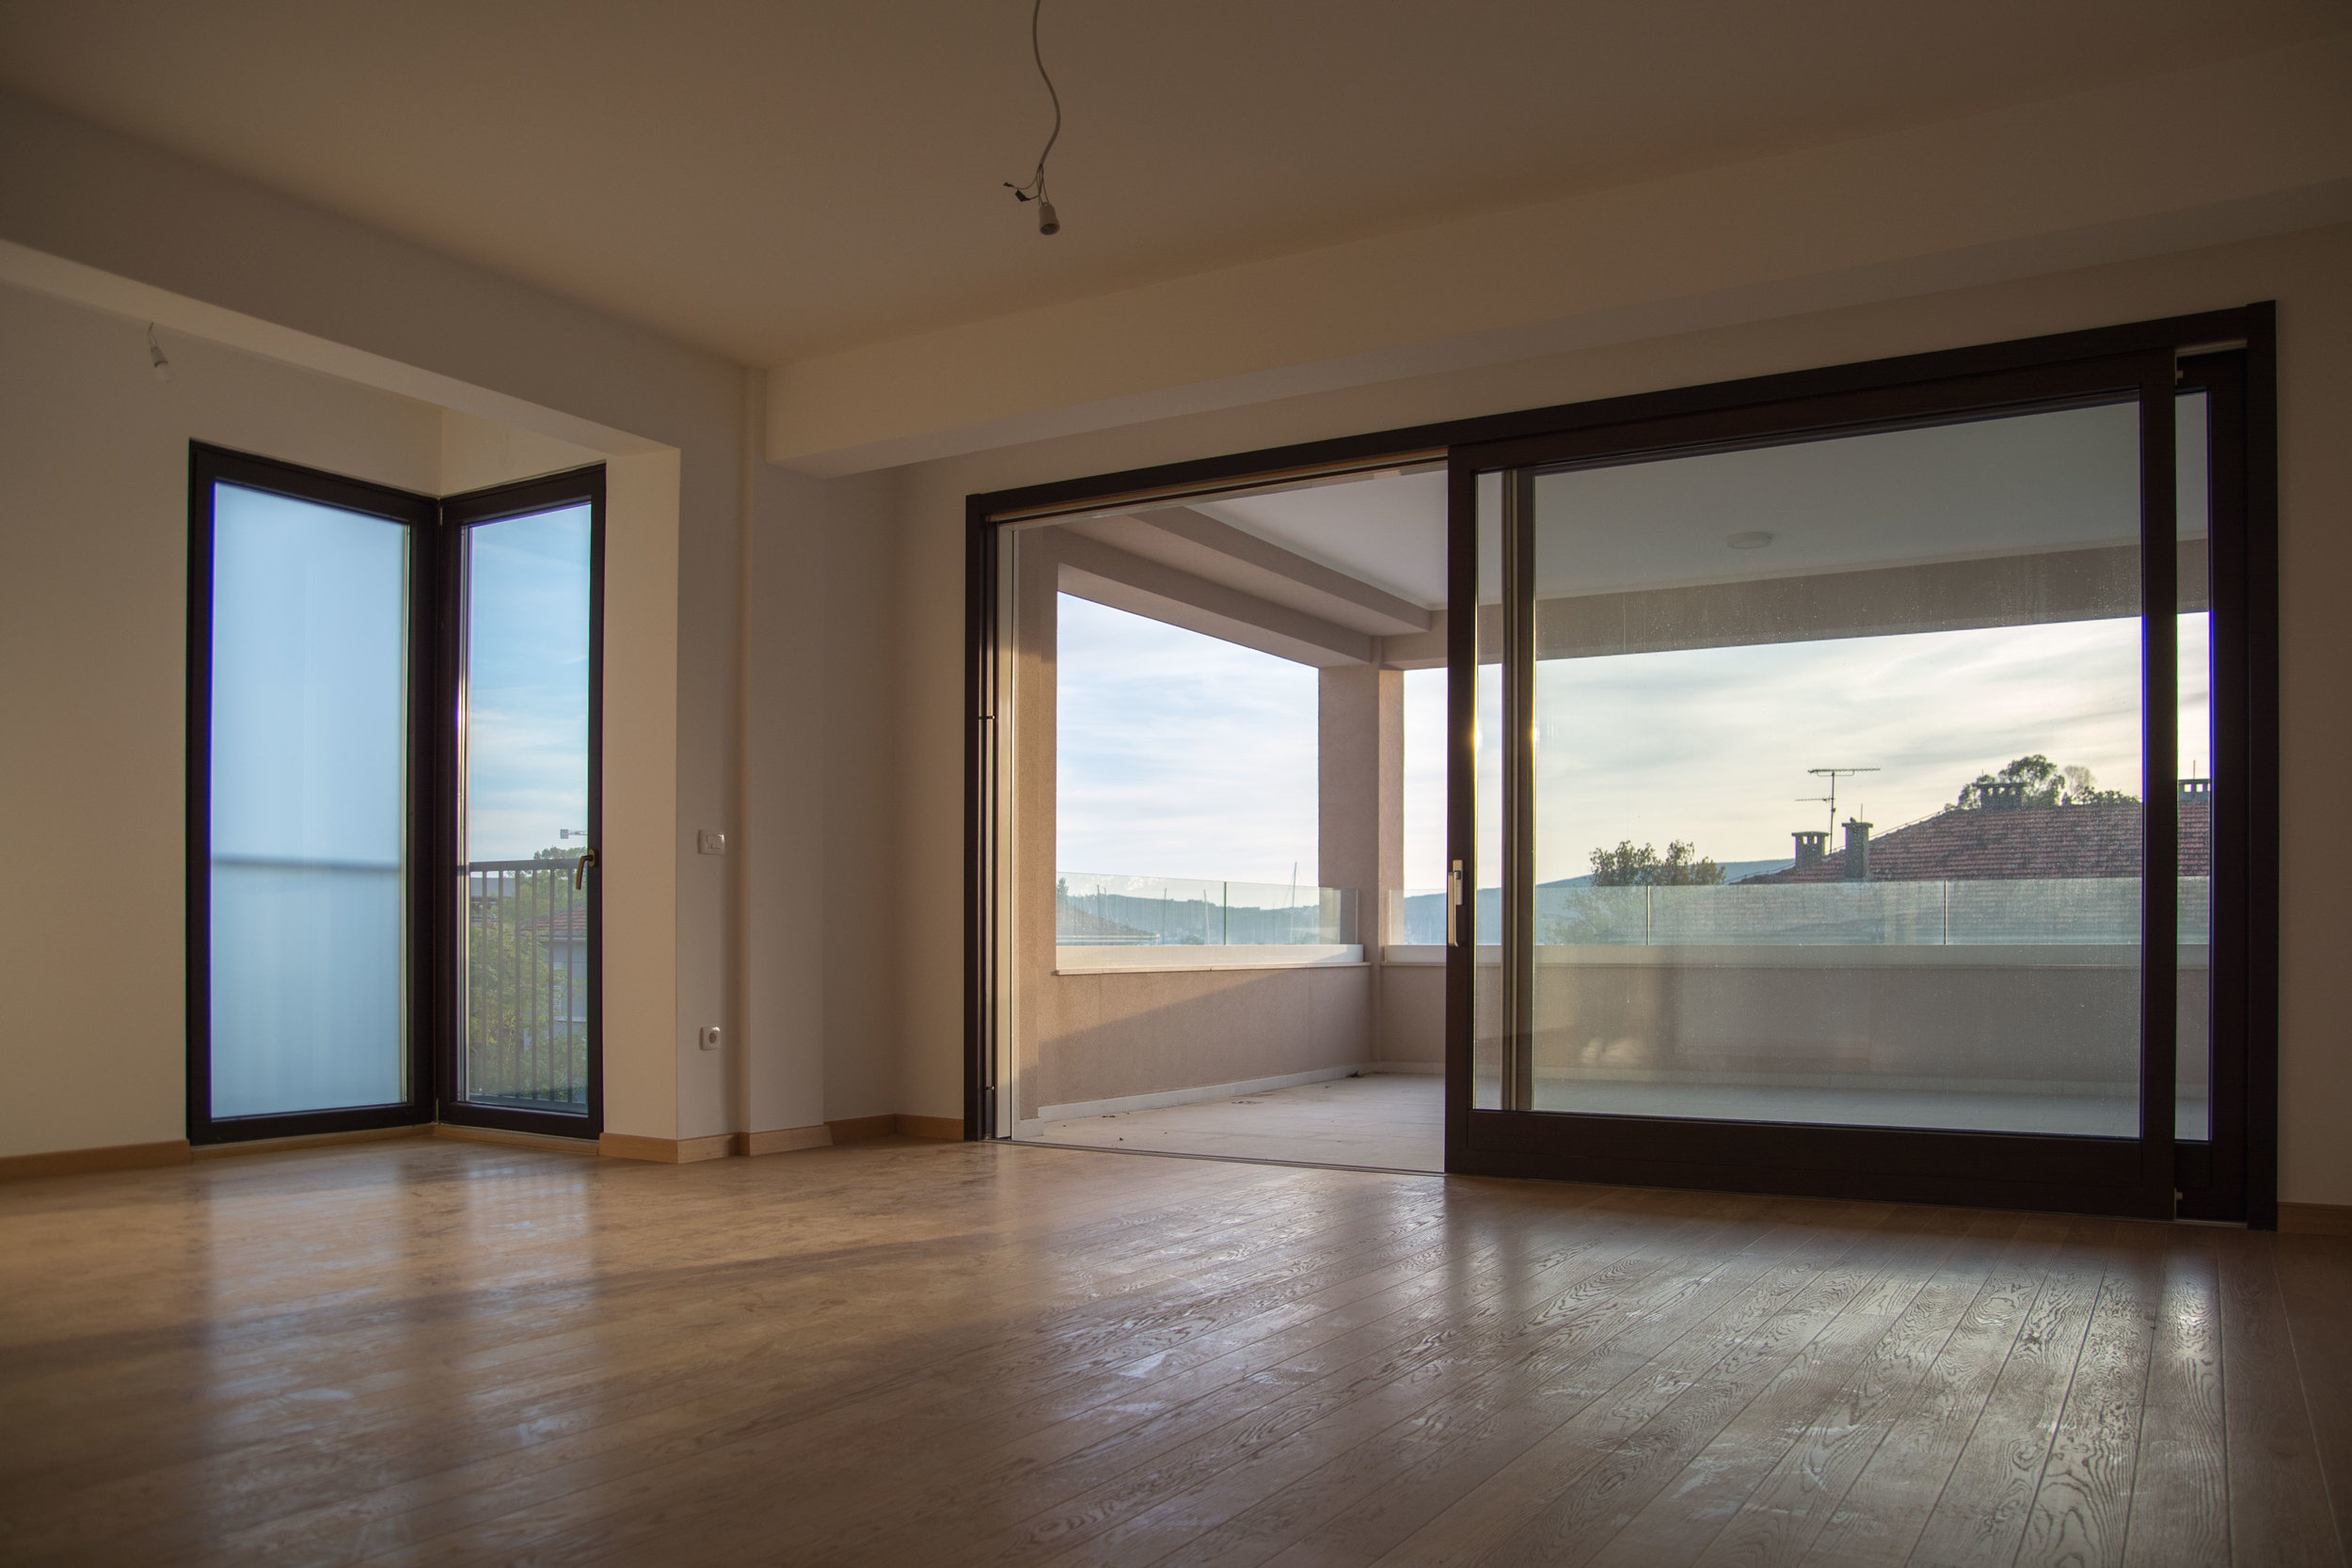 tivat-two-bedroom-apartment-for-sale-property-in-montenegro (9).jpg